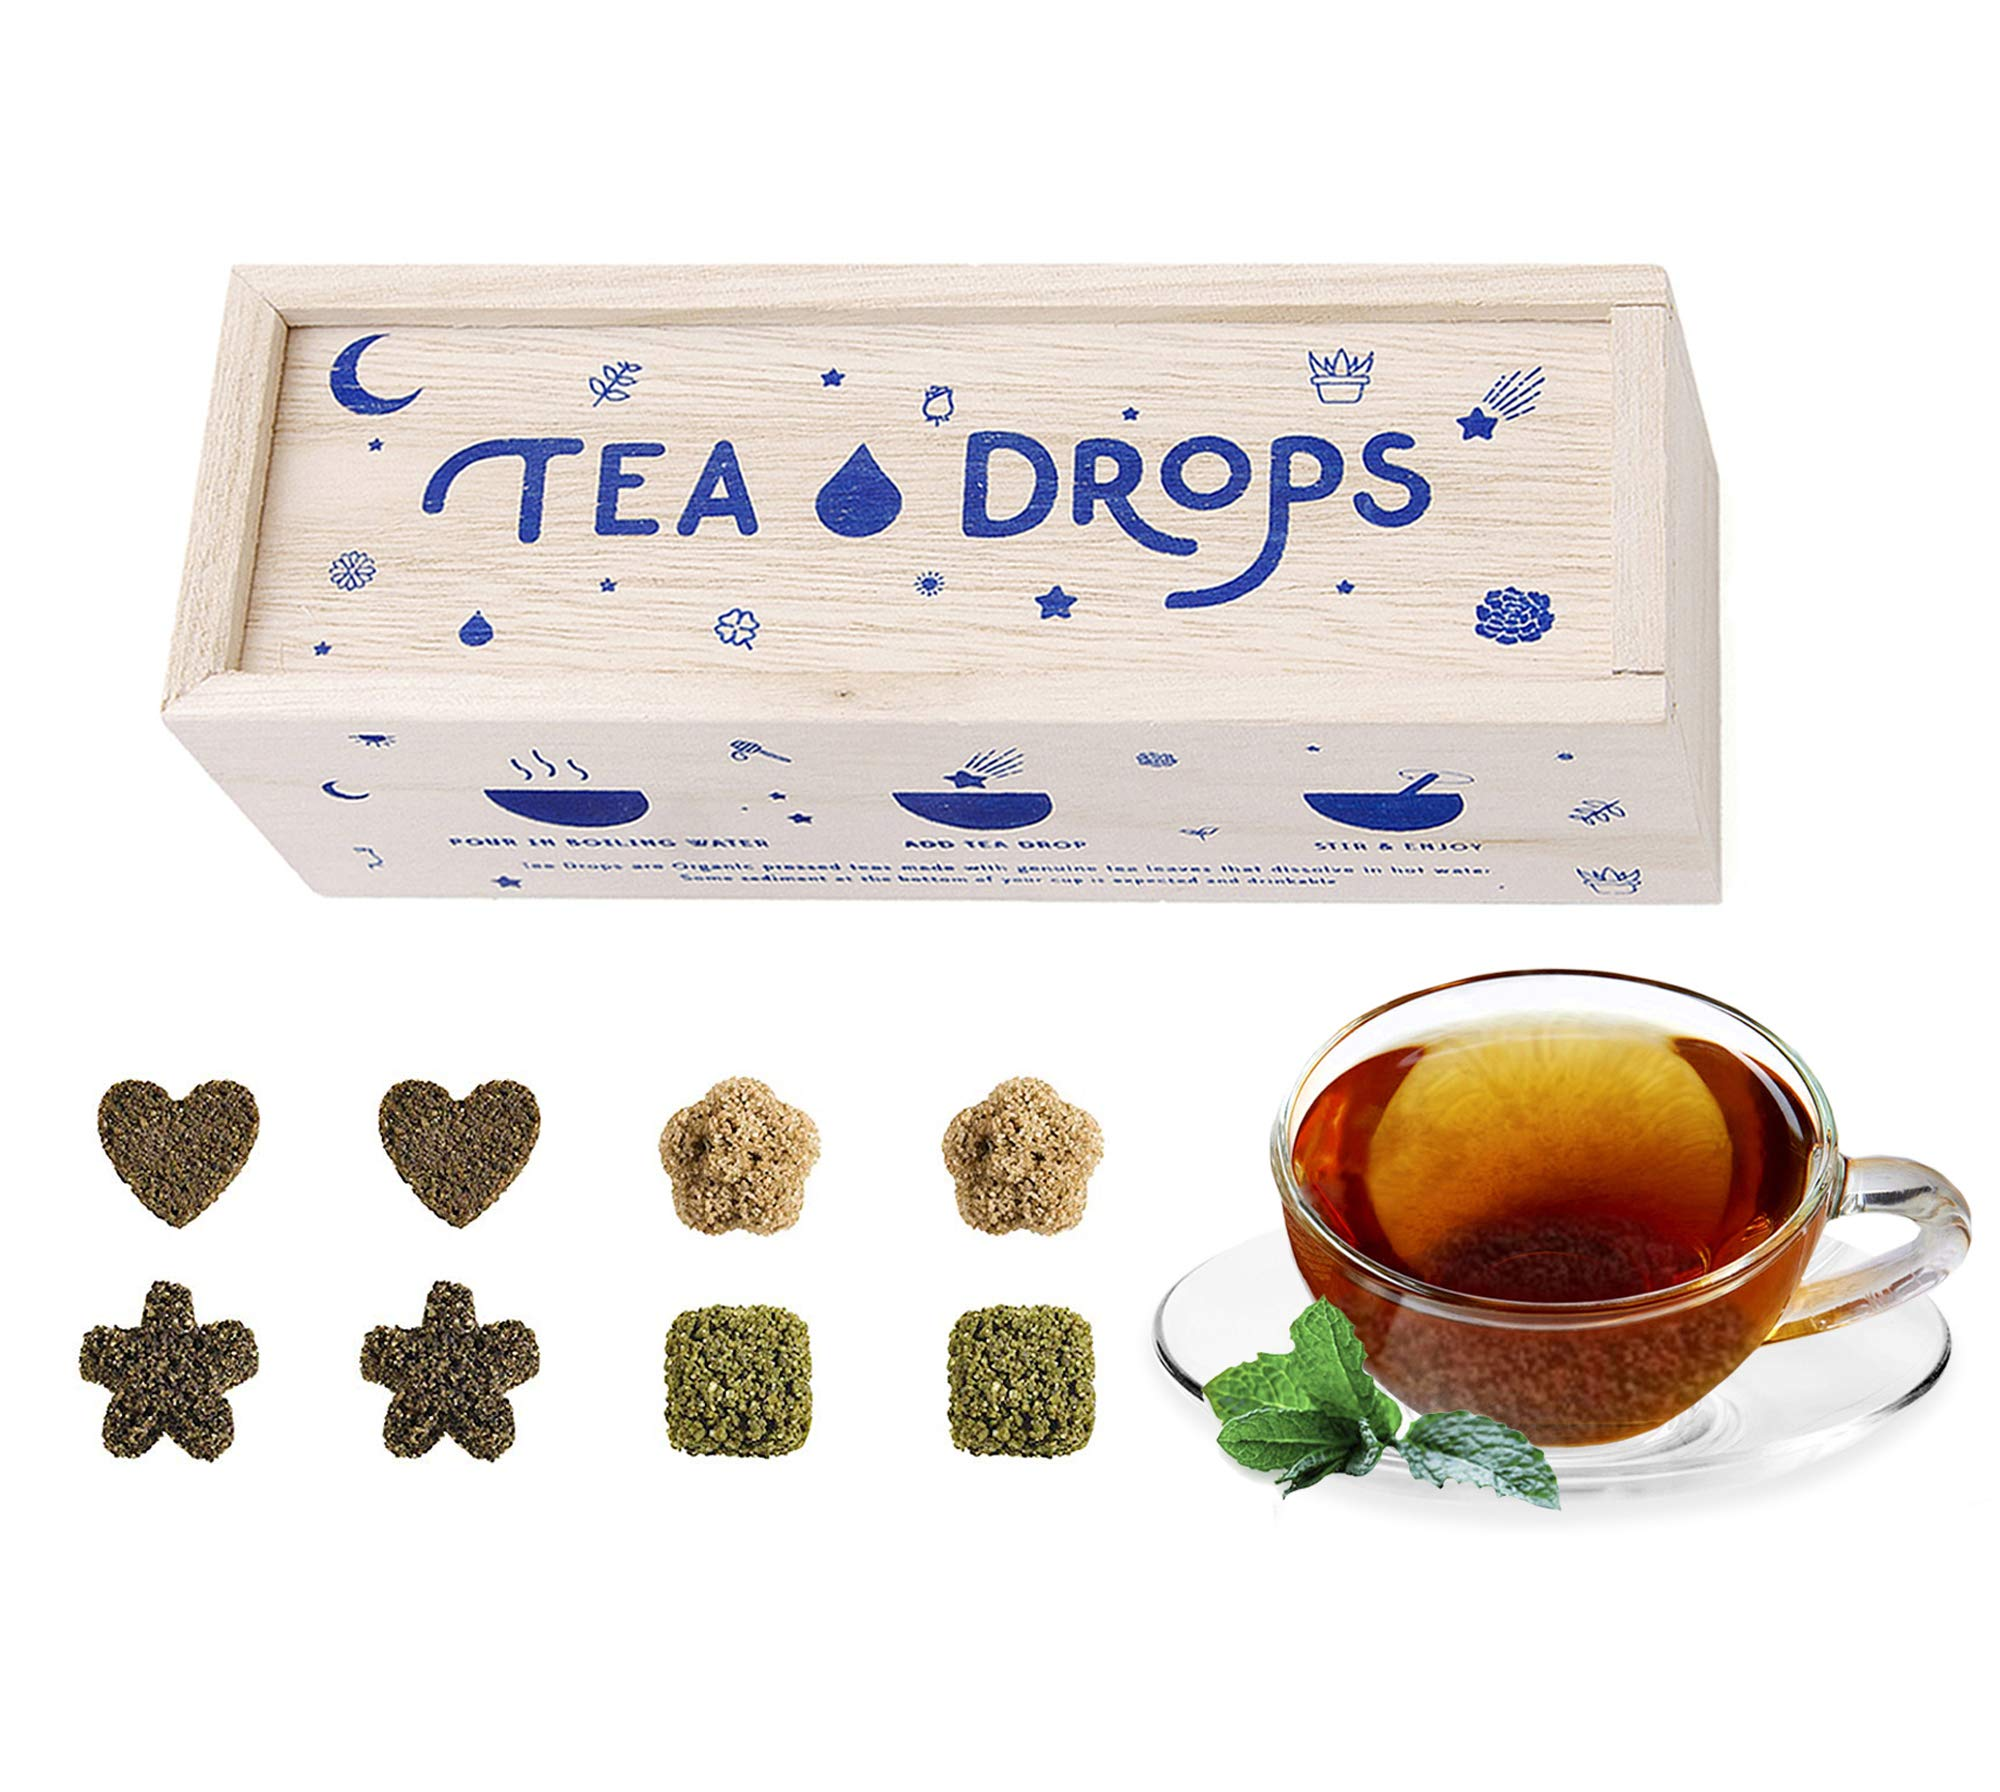 Sweetened Organic Loose Leaf Tea | Standard Herbal Sampler Assortment Box | Instant Pressed Teas Eliminate the Need for Teabags and Sweetener | Tea Lovers Gift | Delicious Hot or Iced | By Tea Drops by Tea Drops